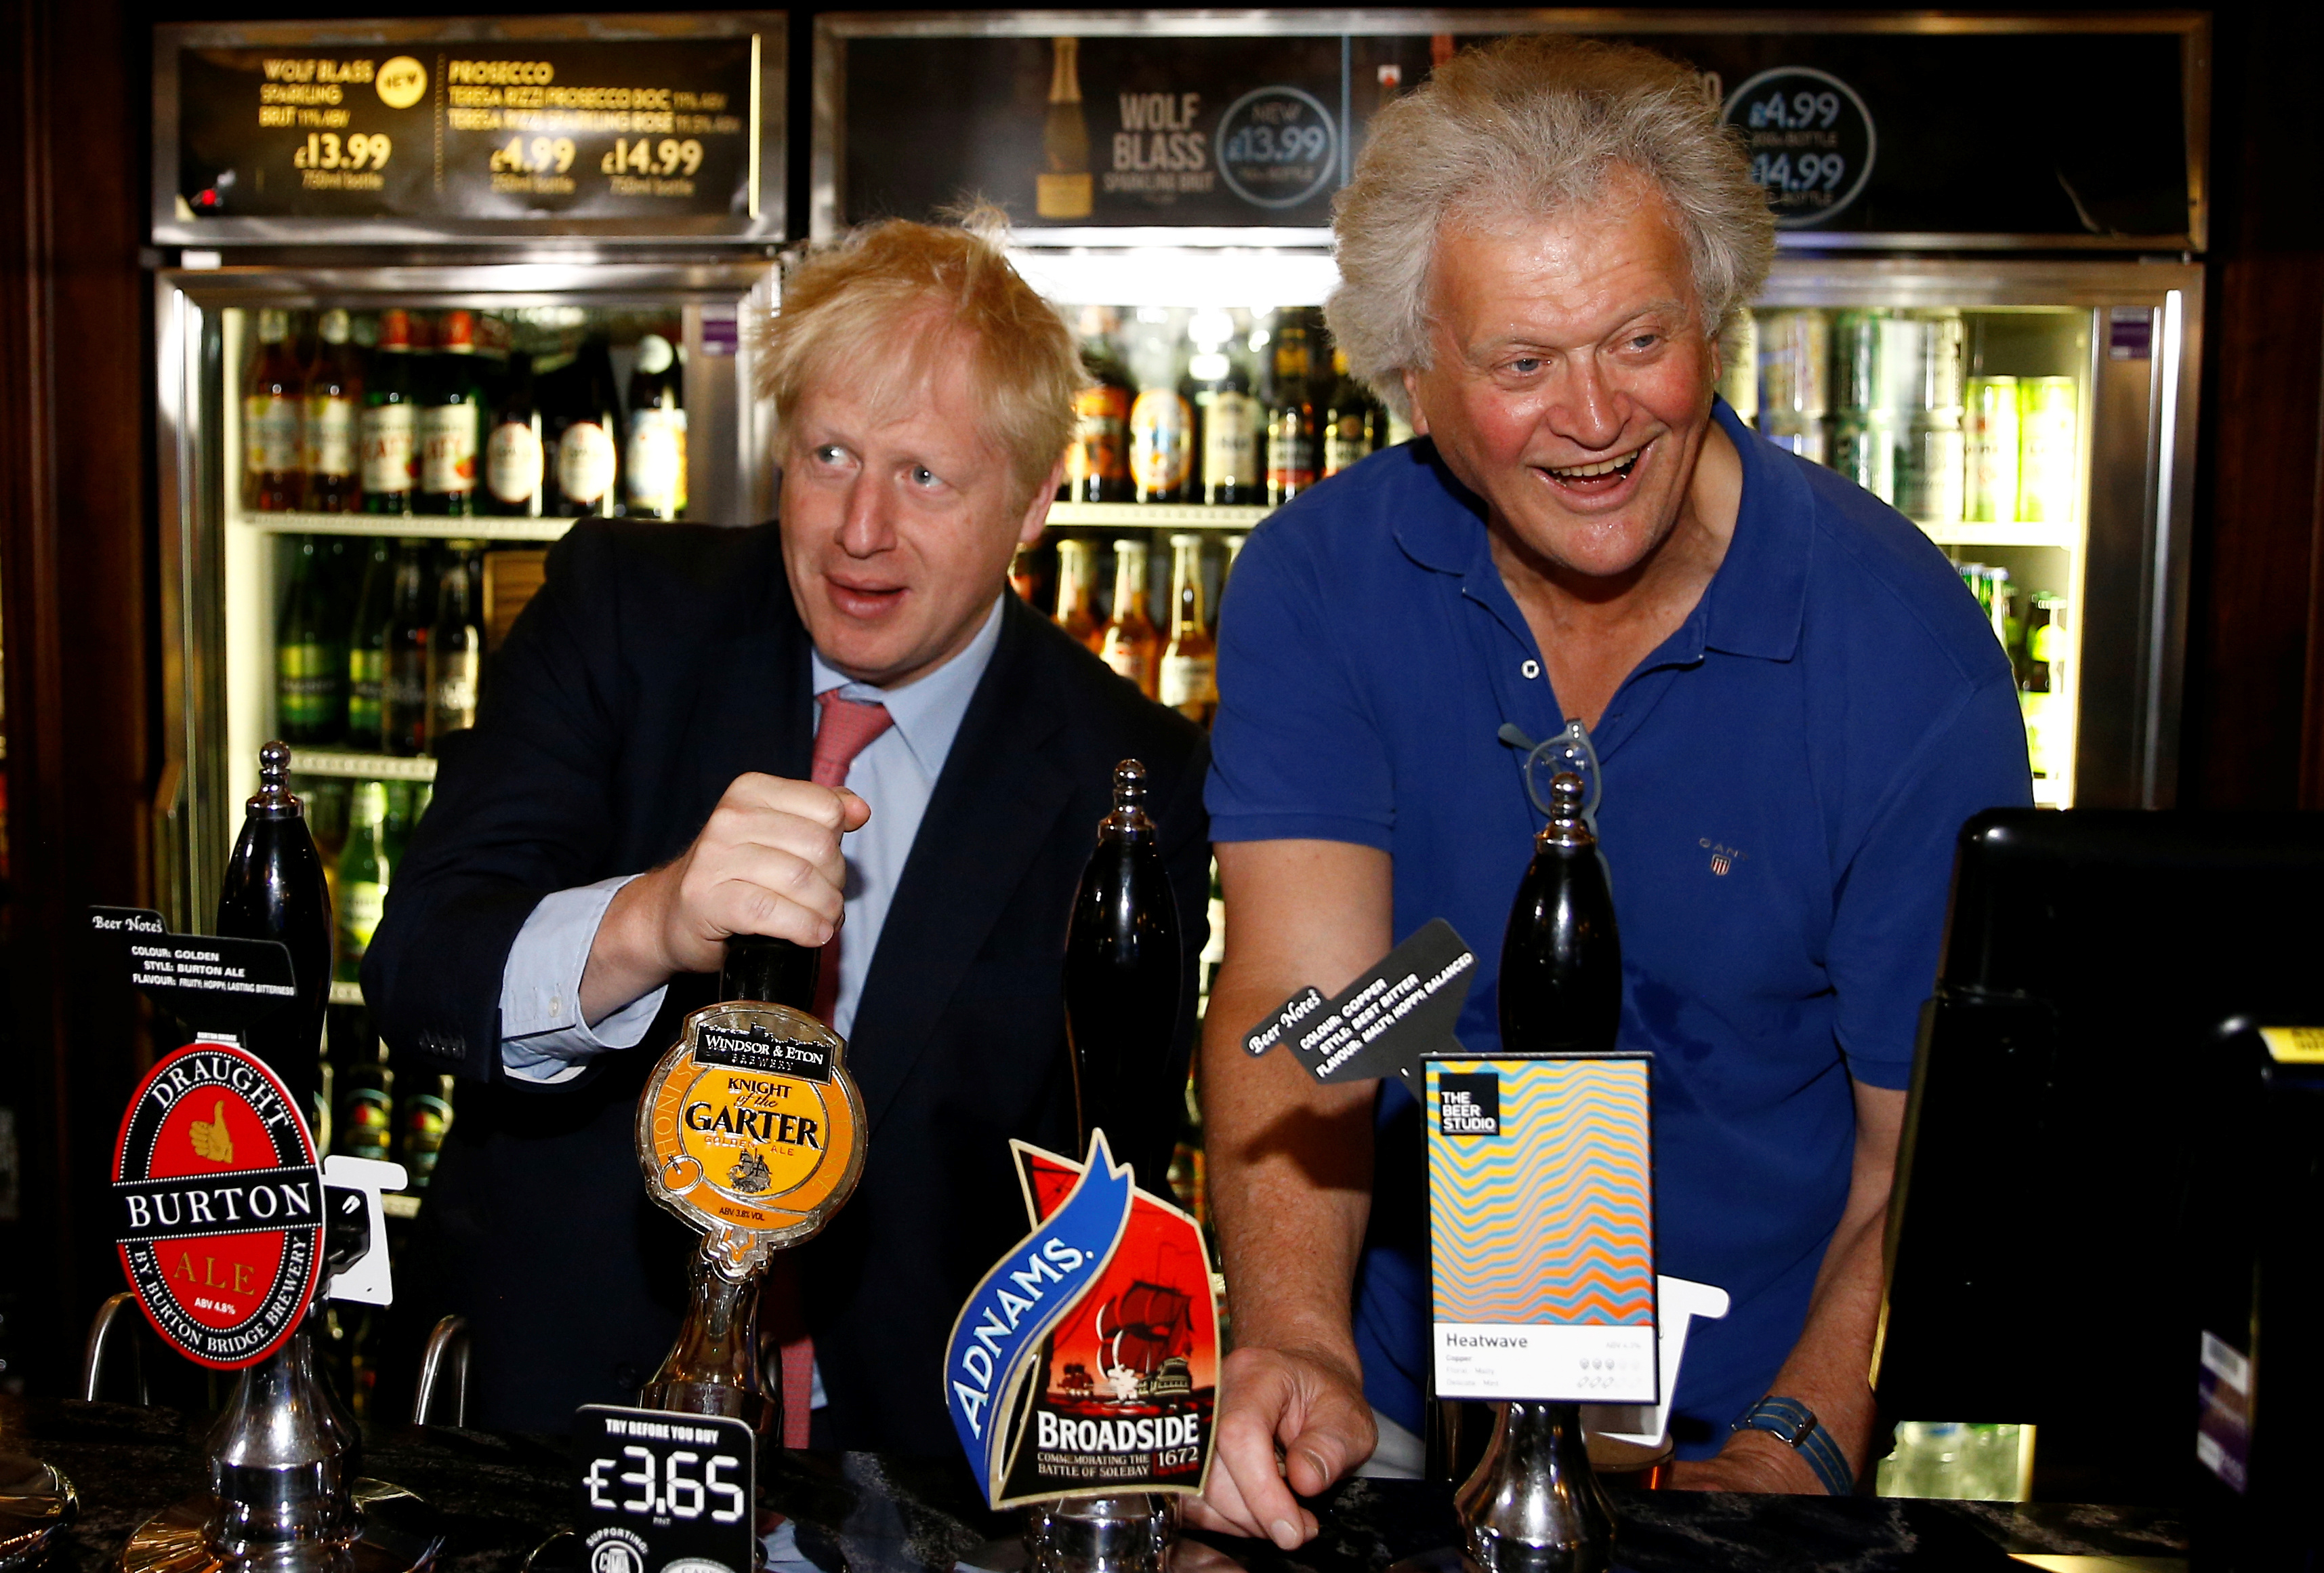 Pub Juggernaut Wetherspoons Launches Another PR Bid With No Basis in Fact